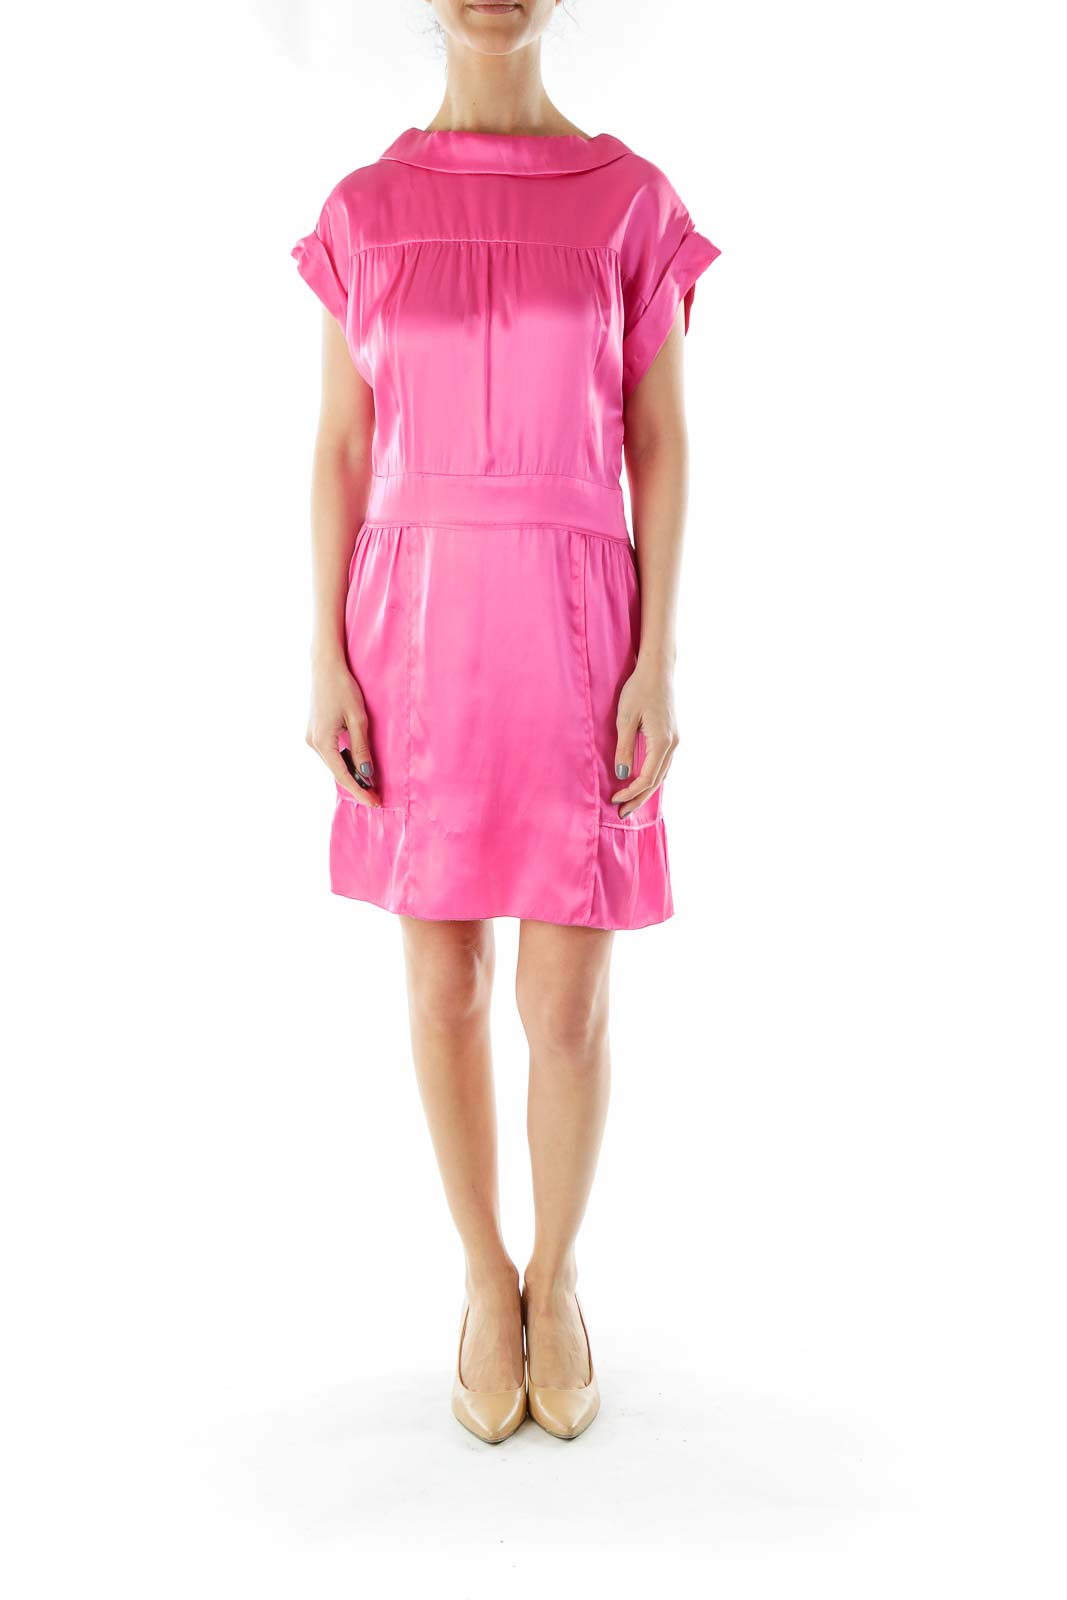 Pink Silk Cocktail Dress with Button Down Back